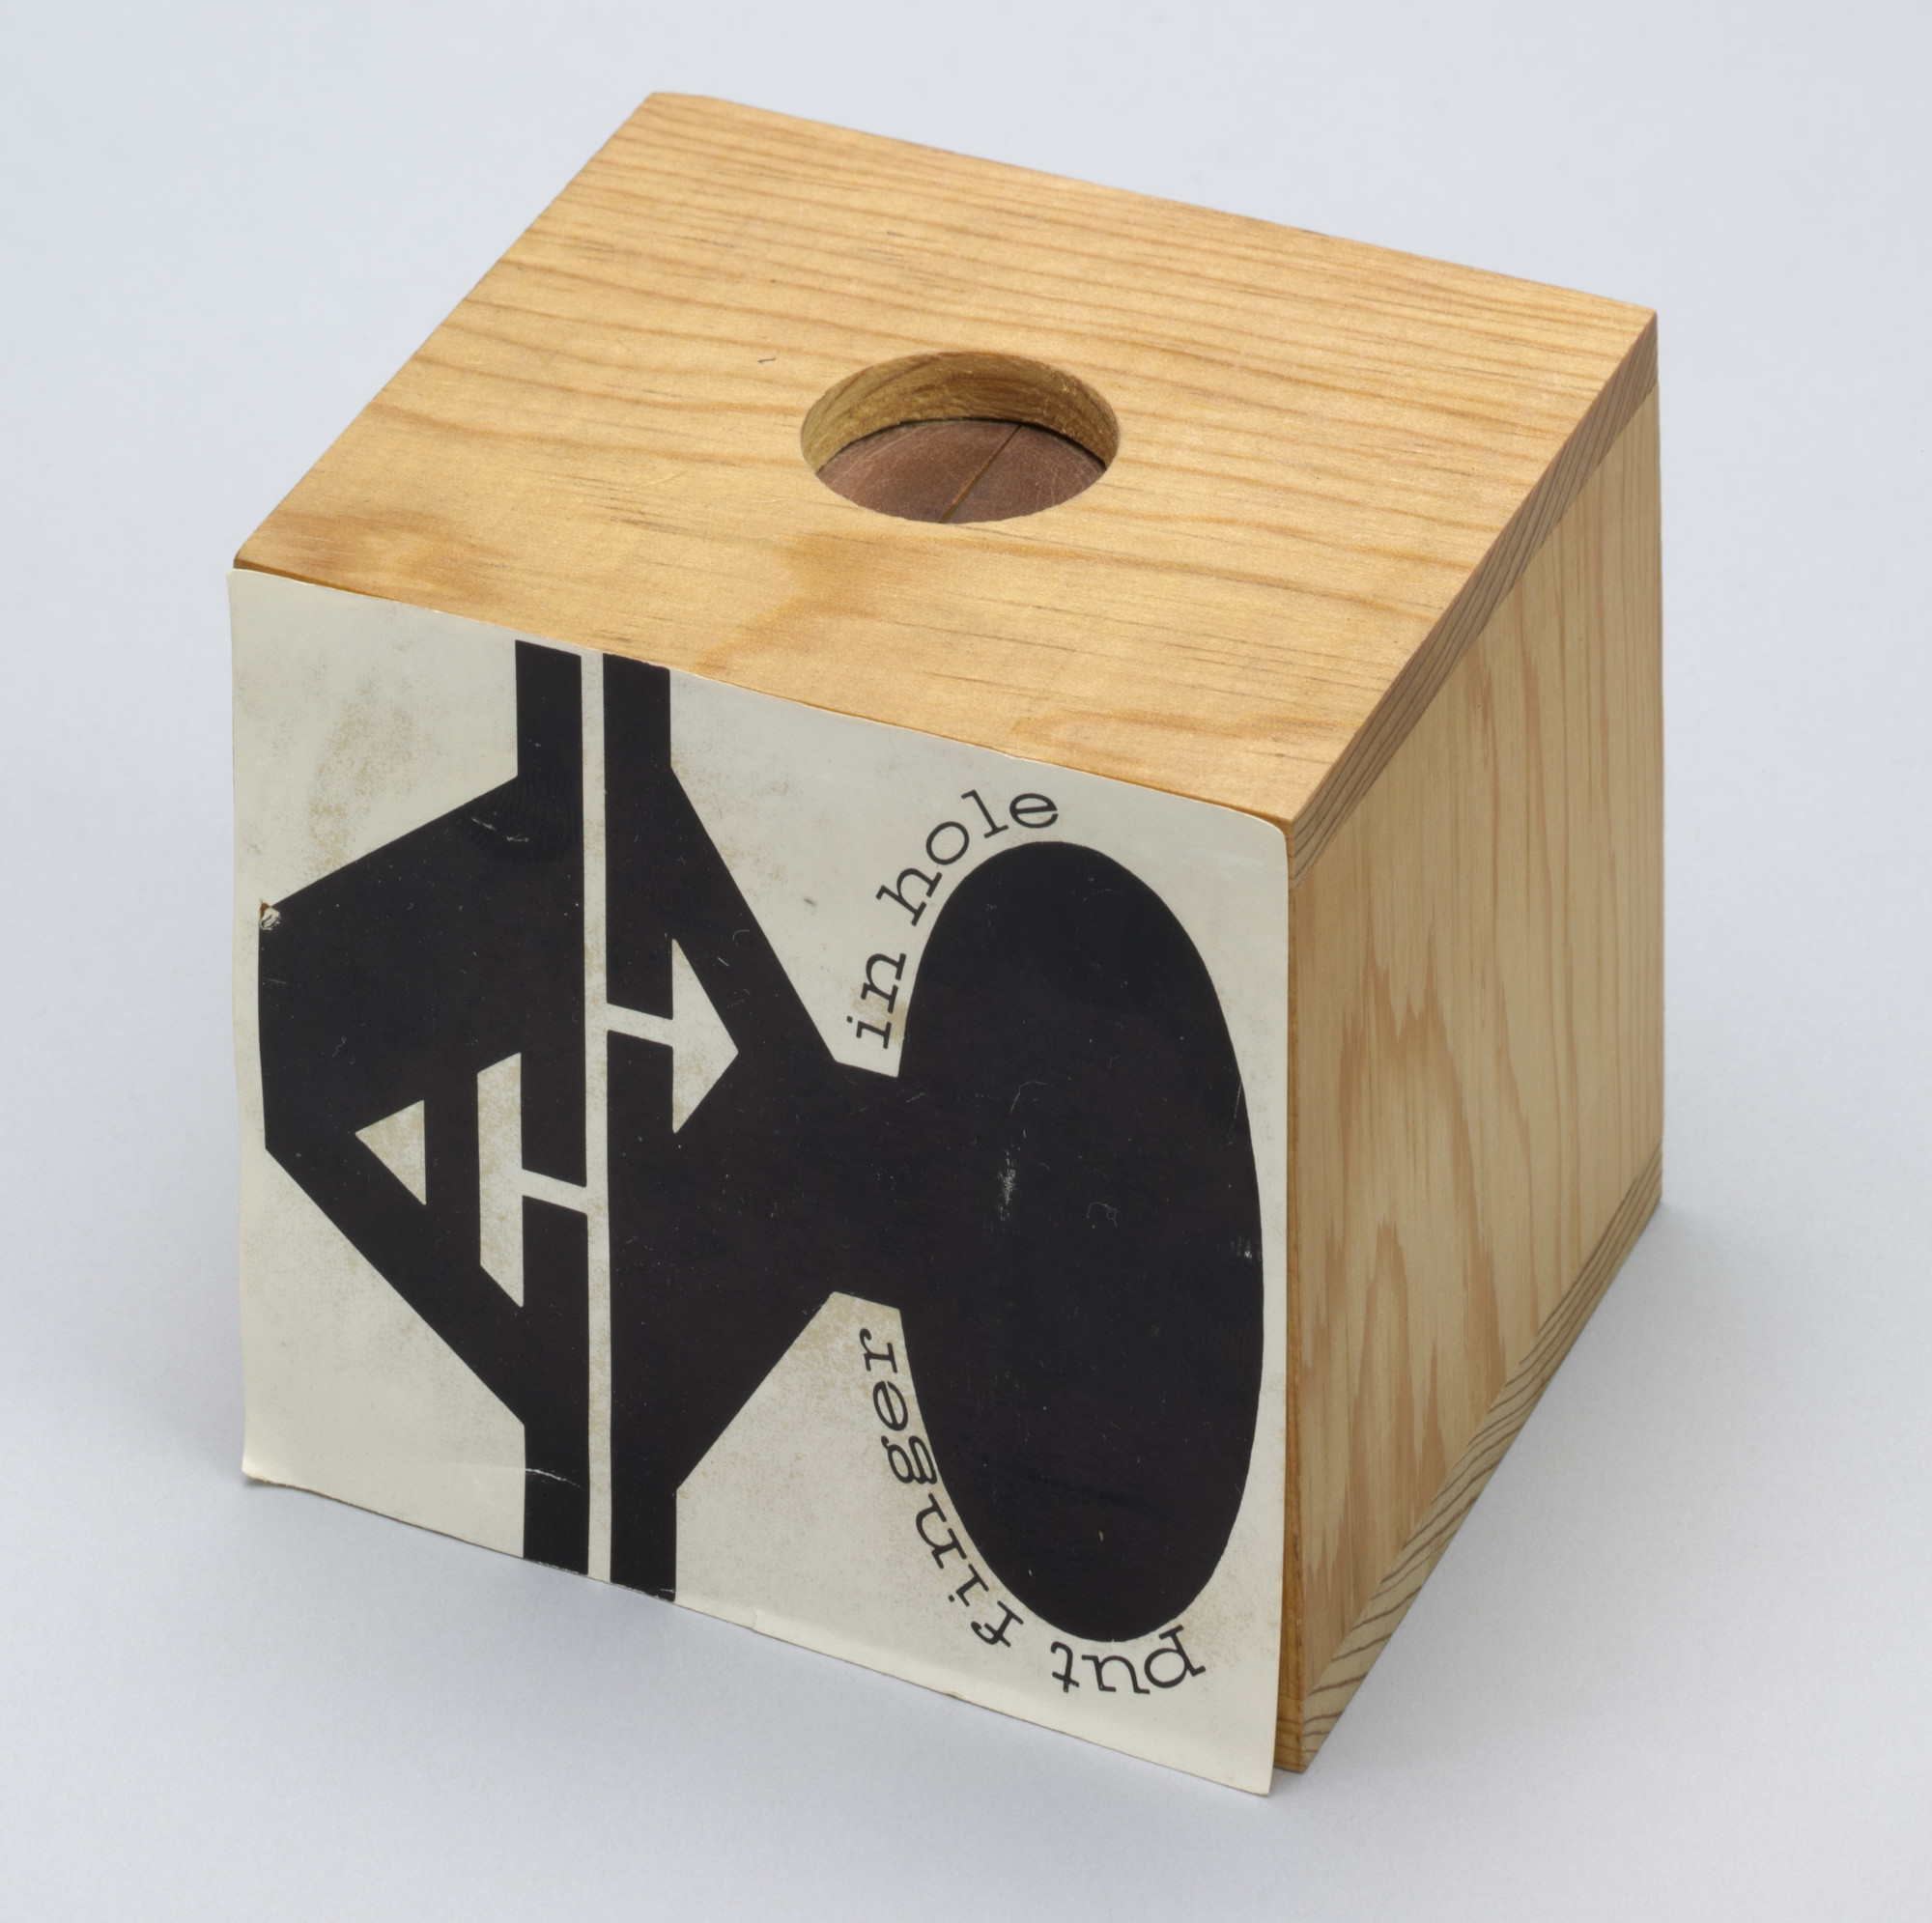 Ay-O. Put Finger in Hole from Fluxkit. 1965